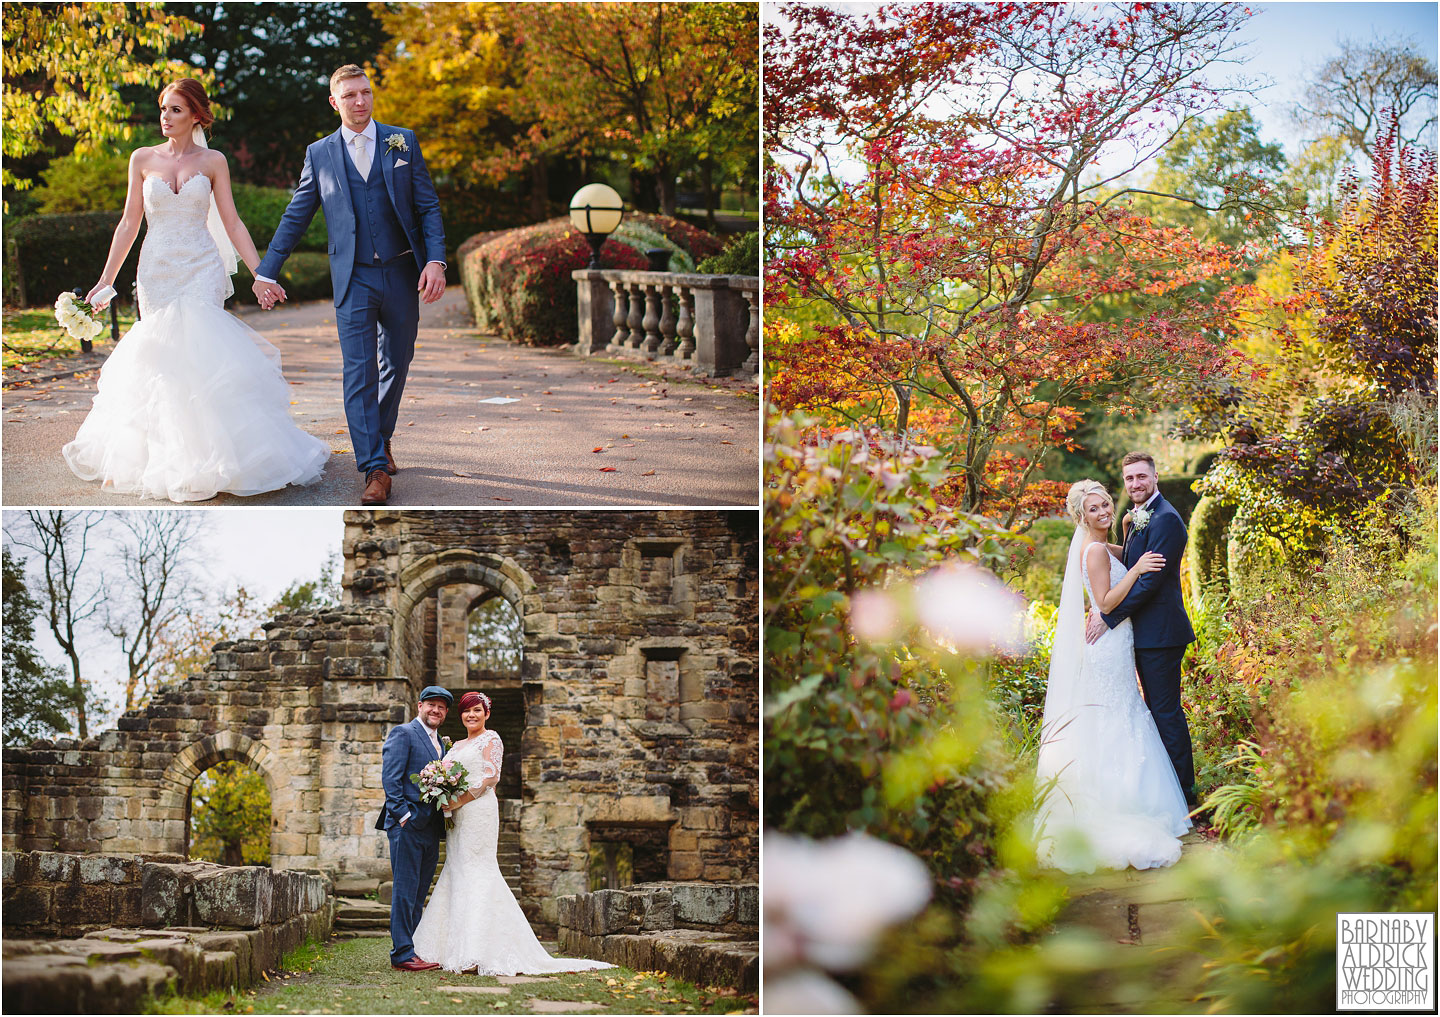 Wedding couple photos at Kirkstall Abbey near Leeds Amazing Yorkshire Wedding Photos, Best Yorkshire Wedding Photos 2018